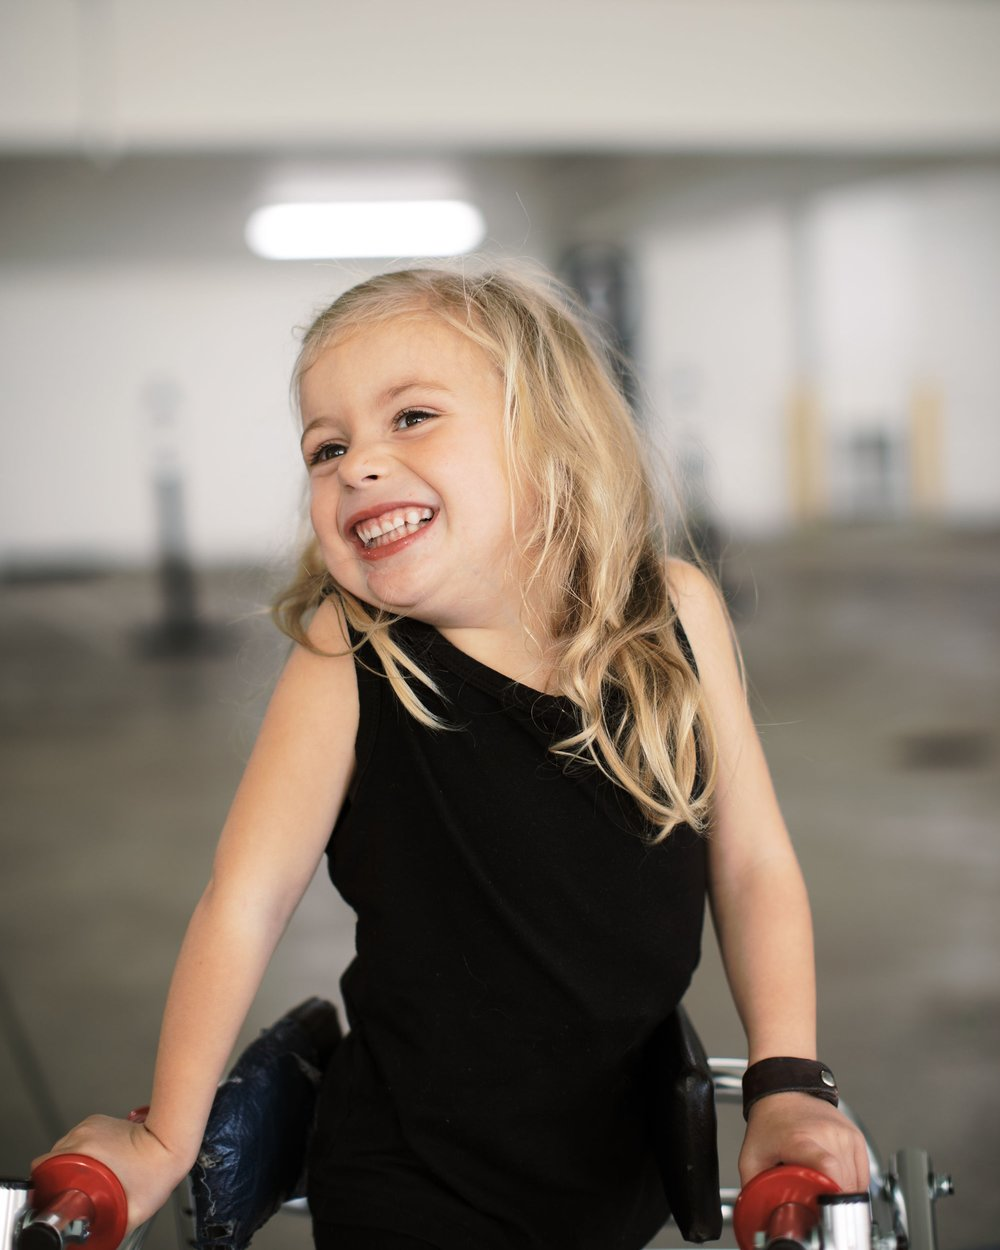 Meet Jaxlee… - With a smile that stops strangers dead in their tracks, Jaxlee Renee is the light of our life! In her four short years she has endured more than most will in a lifetime. At the age of 2, Jaxlee was diagnosed with Cerebral Palsy. She walks with a K-Walker and rides in a wheel chair for long distances. She uses a speech device as well as ASL (American Sign Language) to communicate with us and her peers. She also receives her remaining nutrients and hydration through a g-tube (feeding tube in her tummy) however, these obstacles don't stop her from enjoying every moment of life to the fullest.She has taught us more about the meaning of life than we ever knew existed.Some of her most favorite things include swimming, therapeutic horse back riding and spending time with her family!